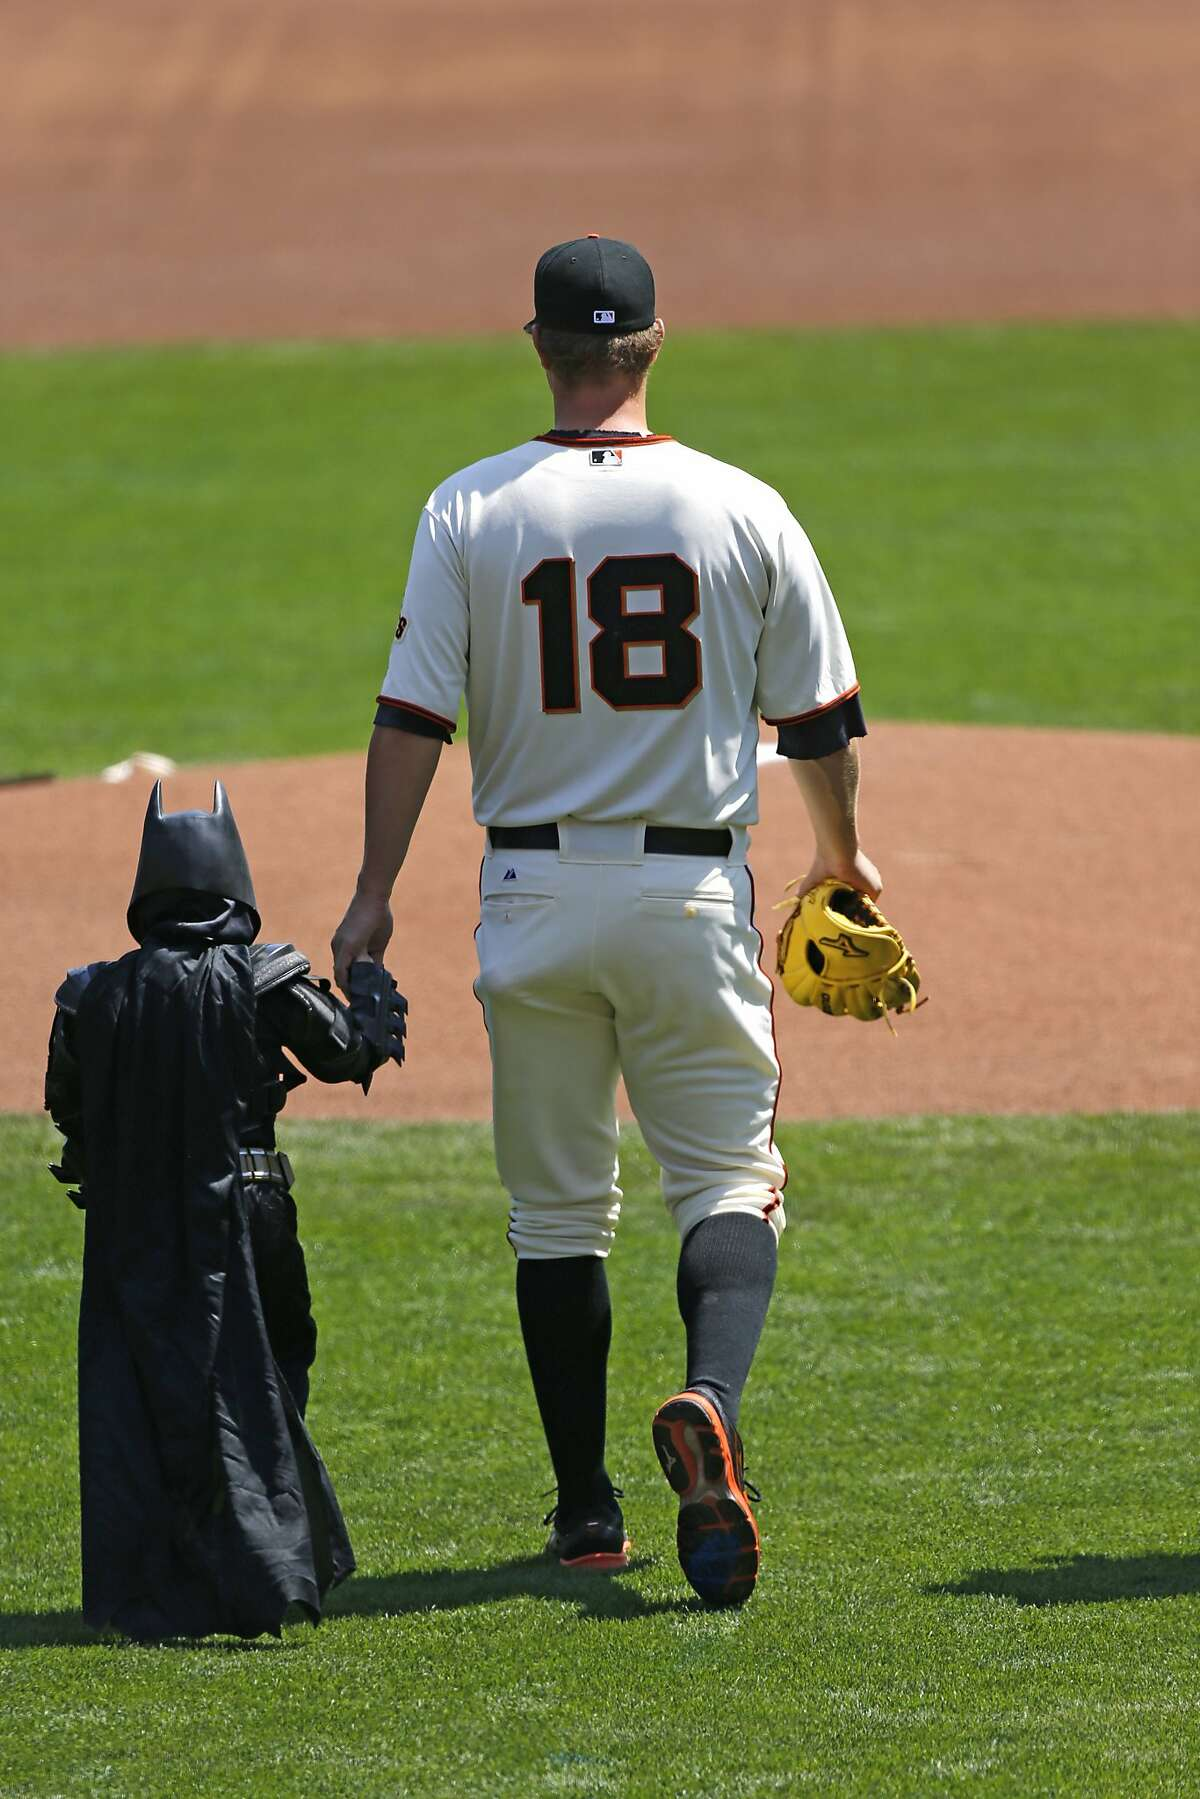 Giants pitcher Matt Cain walks Batkid to the pitcher's mound during the opening ceremonies as the San Francisco Giants prepare to take on the Arizona Diamondback during their home opener at AT&T Park on Tuesday April 8, 2014, in San Francisco, Calif.